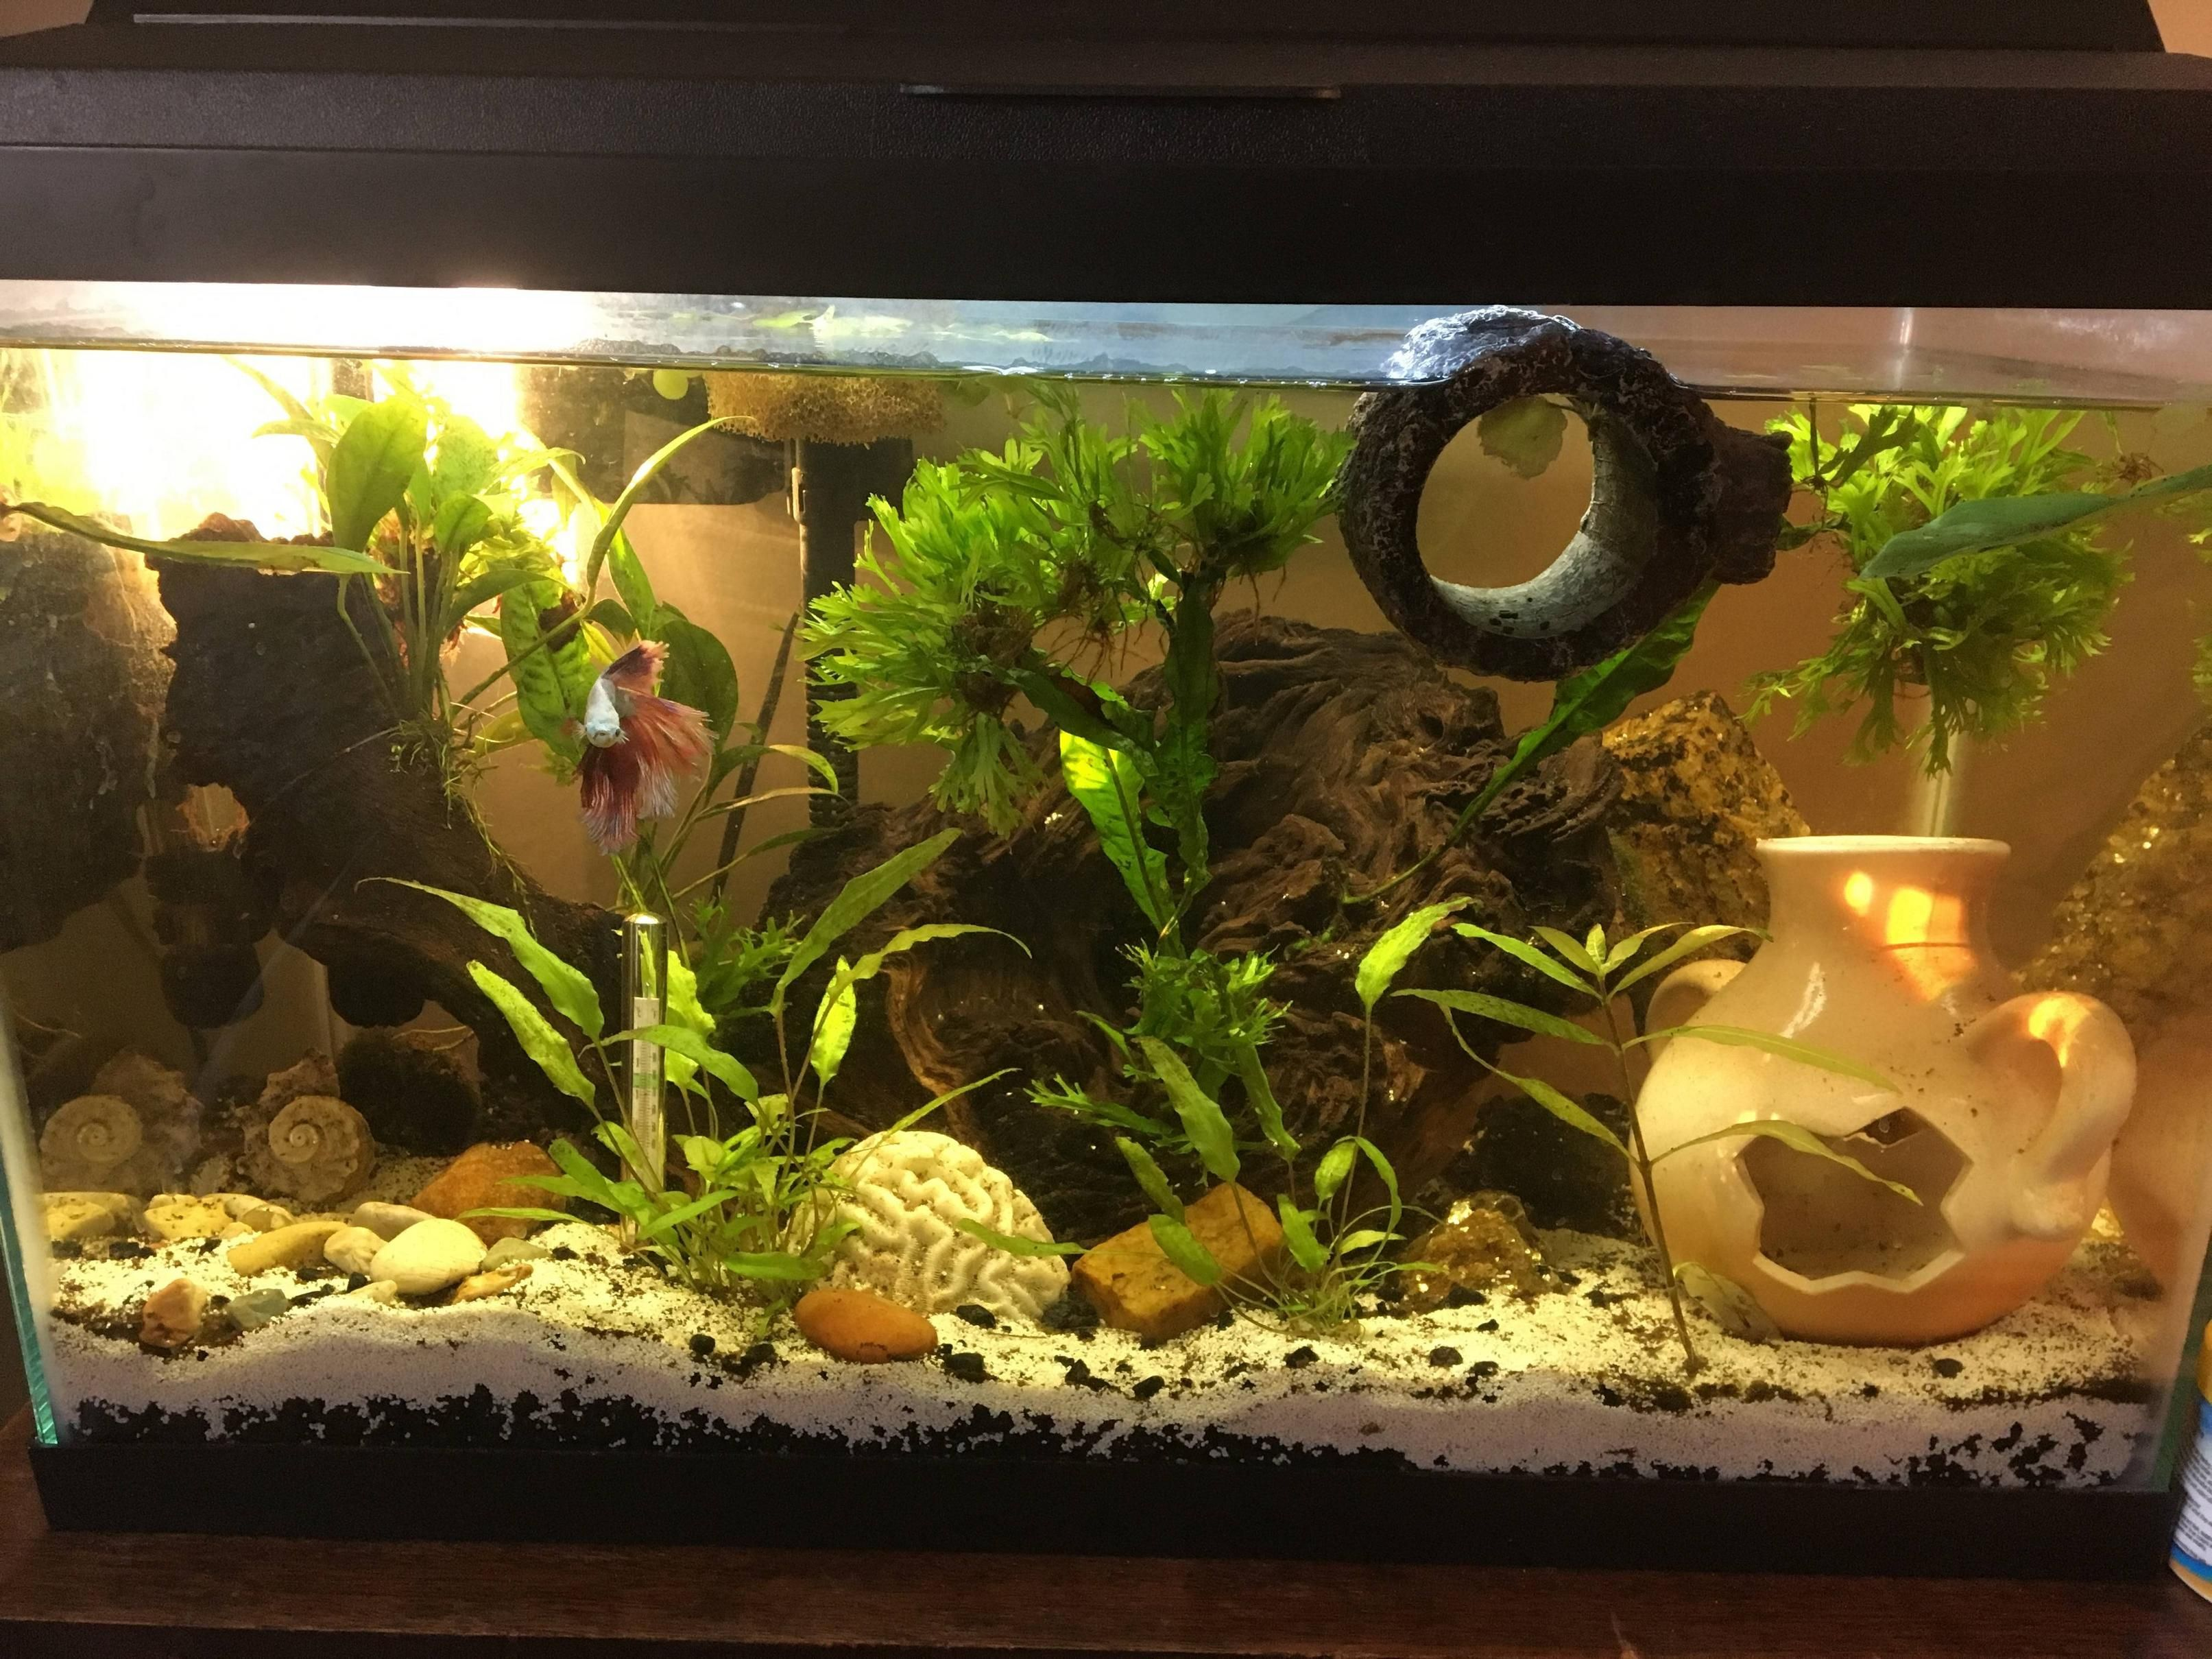 I decided it was time for a change in my g aquariums